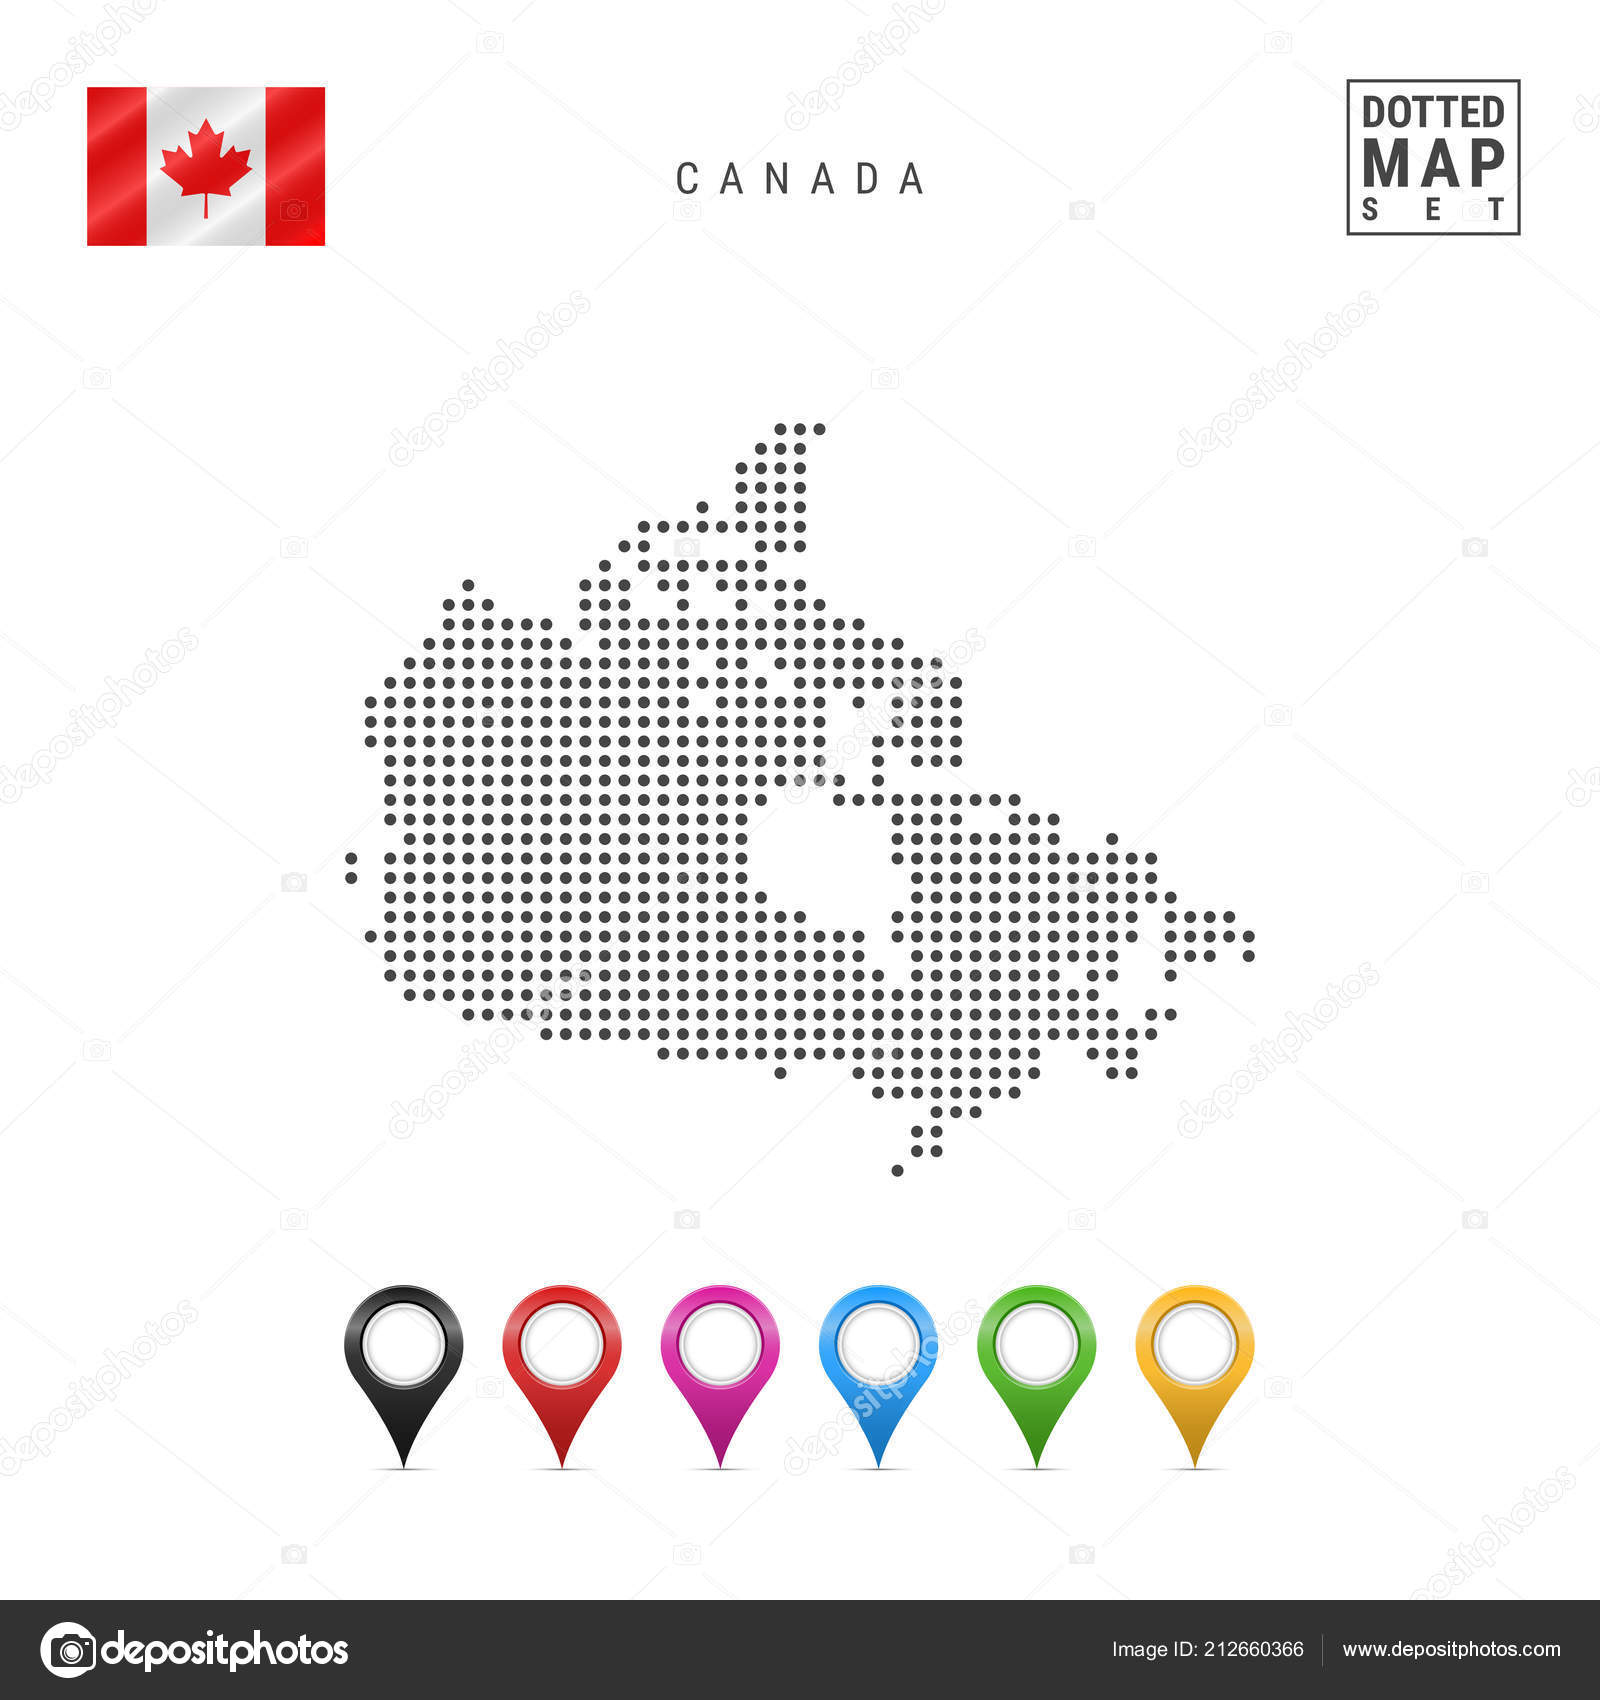 Simple Map Of Canada.Dotted Map Canada Simple Silhouette Canada National Flag Canada Set